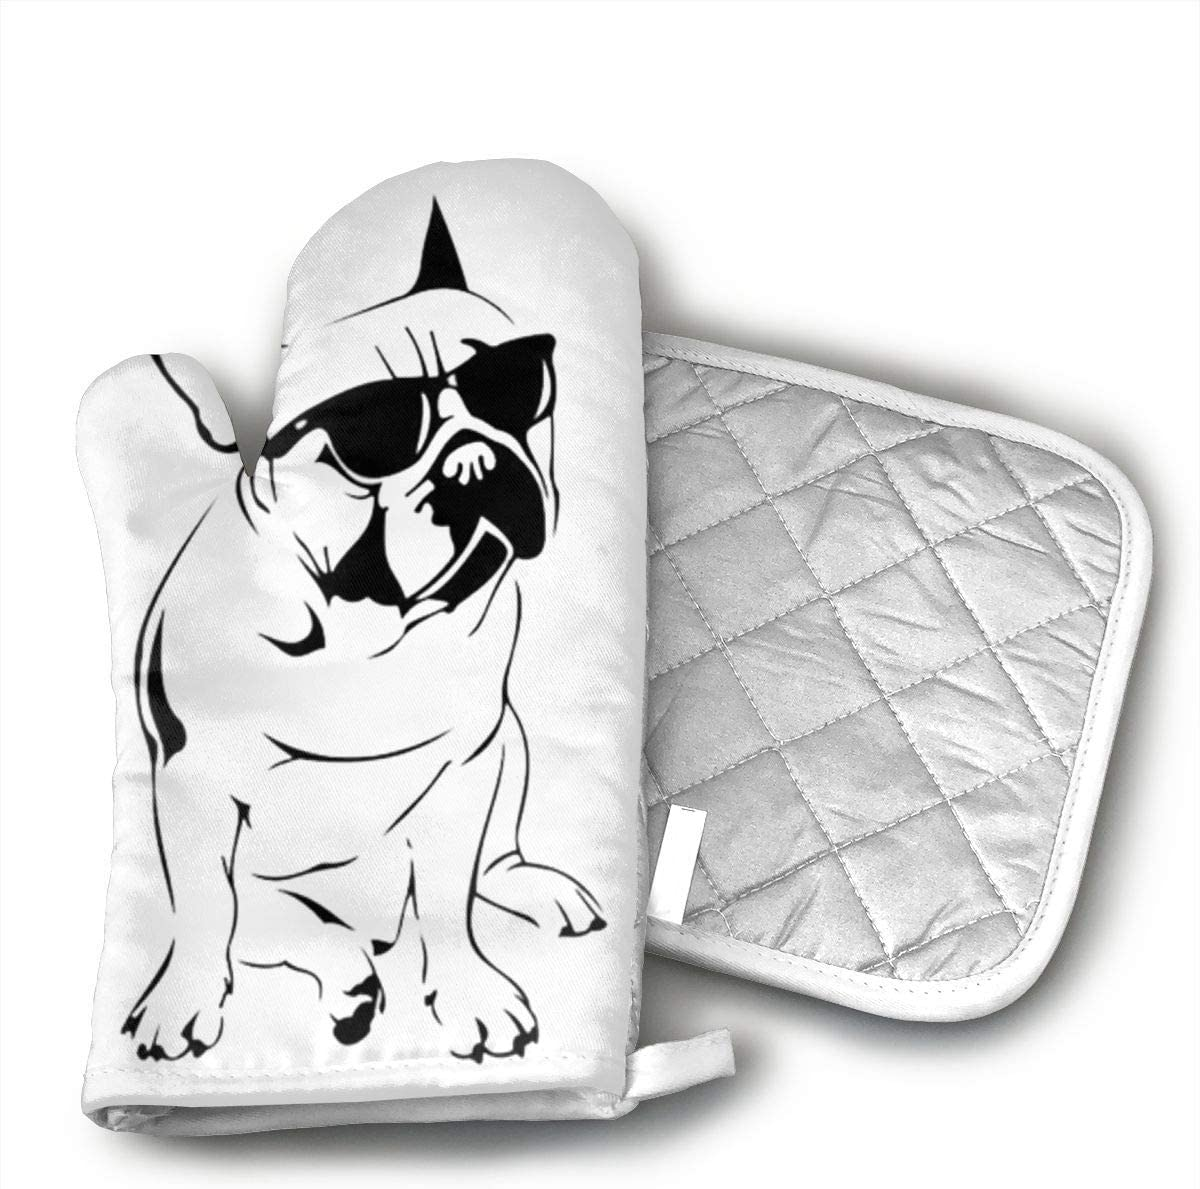 not Ash Frenchie French Bulldog Oven Mitts,Microwave Mitts,Kitchen Glove Heat Resistant,Baking,Barbecue Potholder